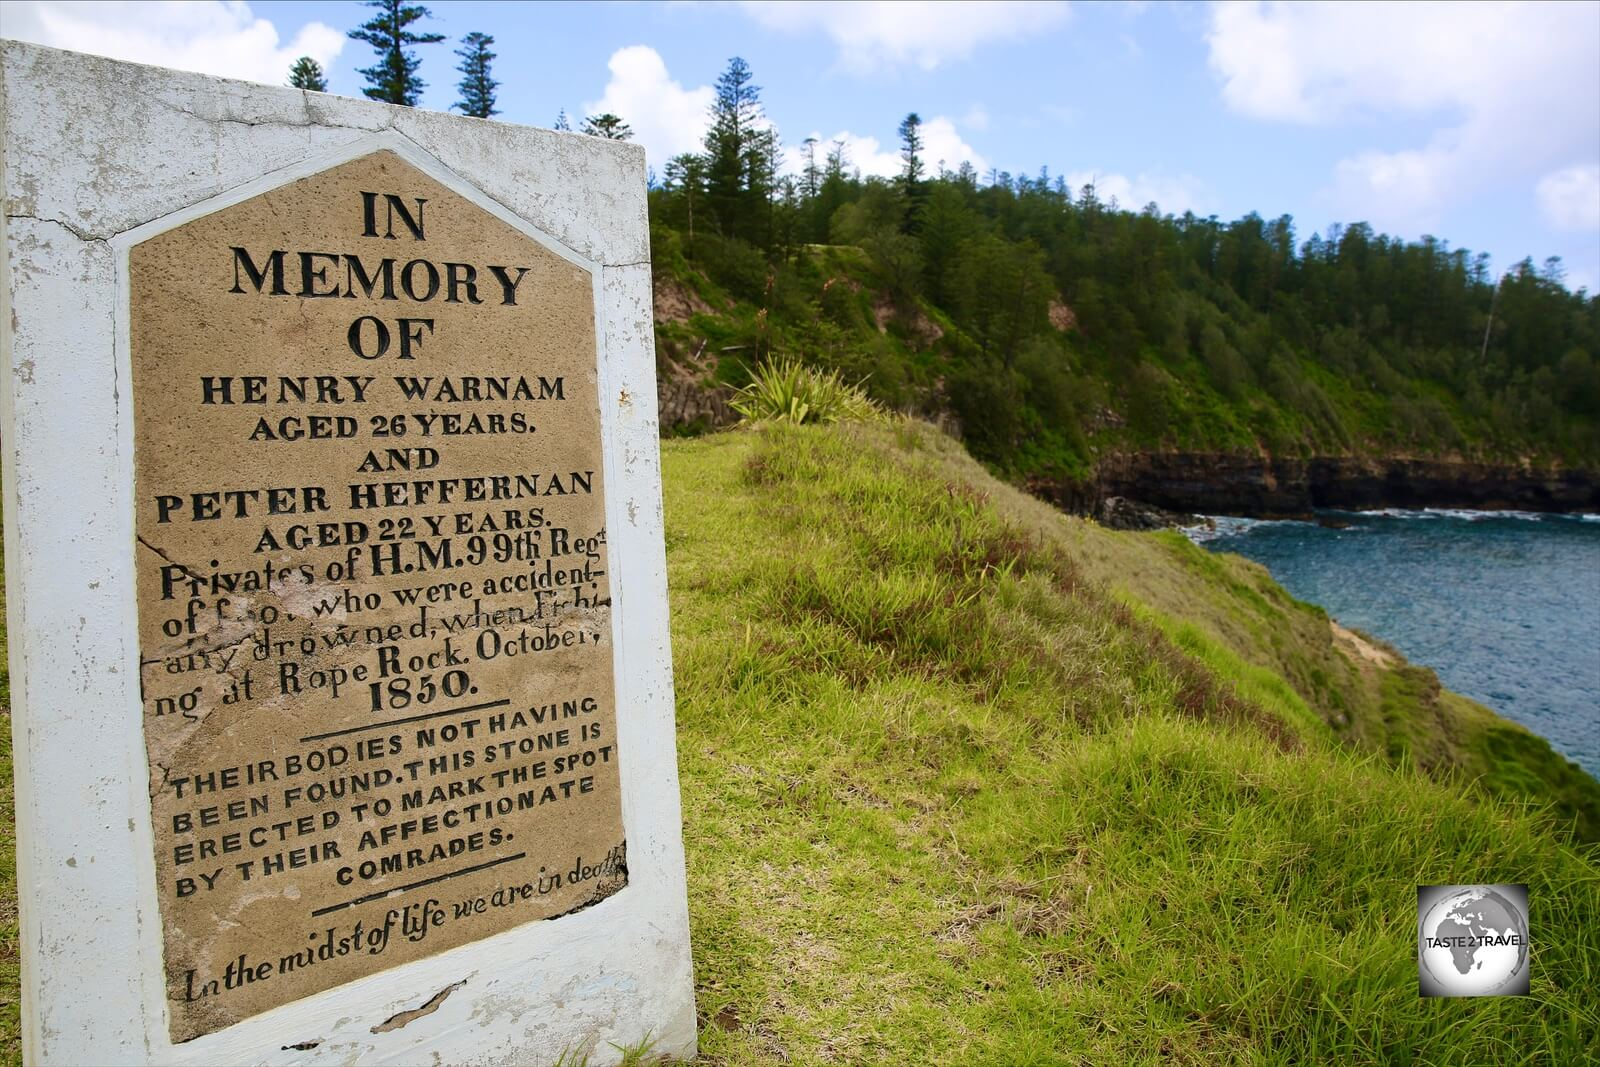 The memorial headstone at Headstone Point.